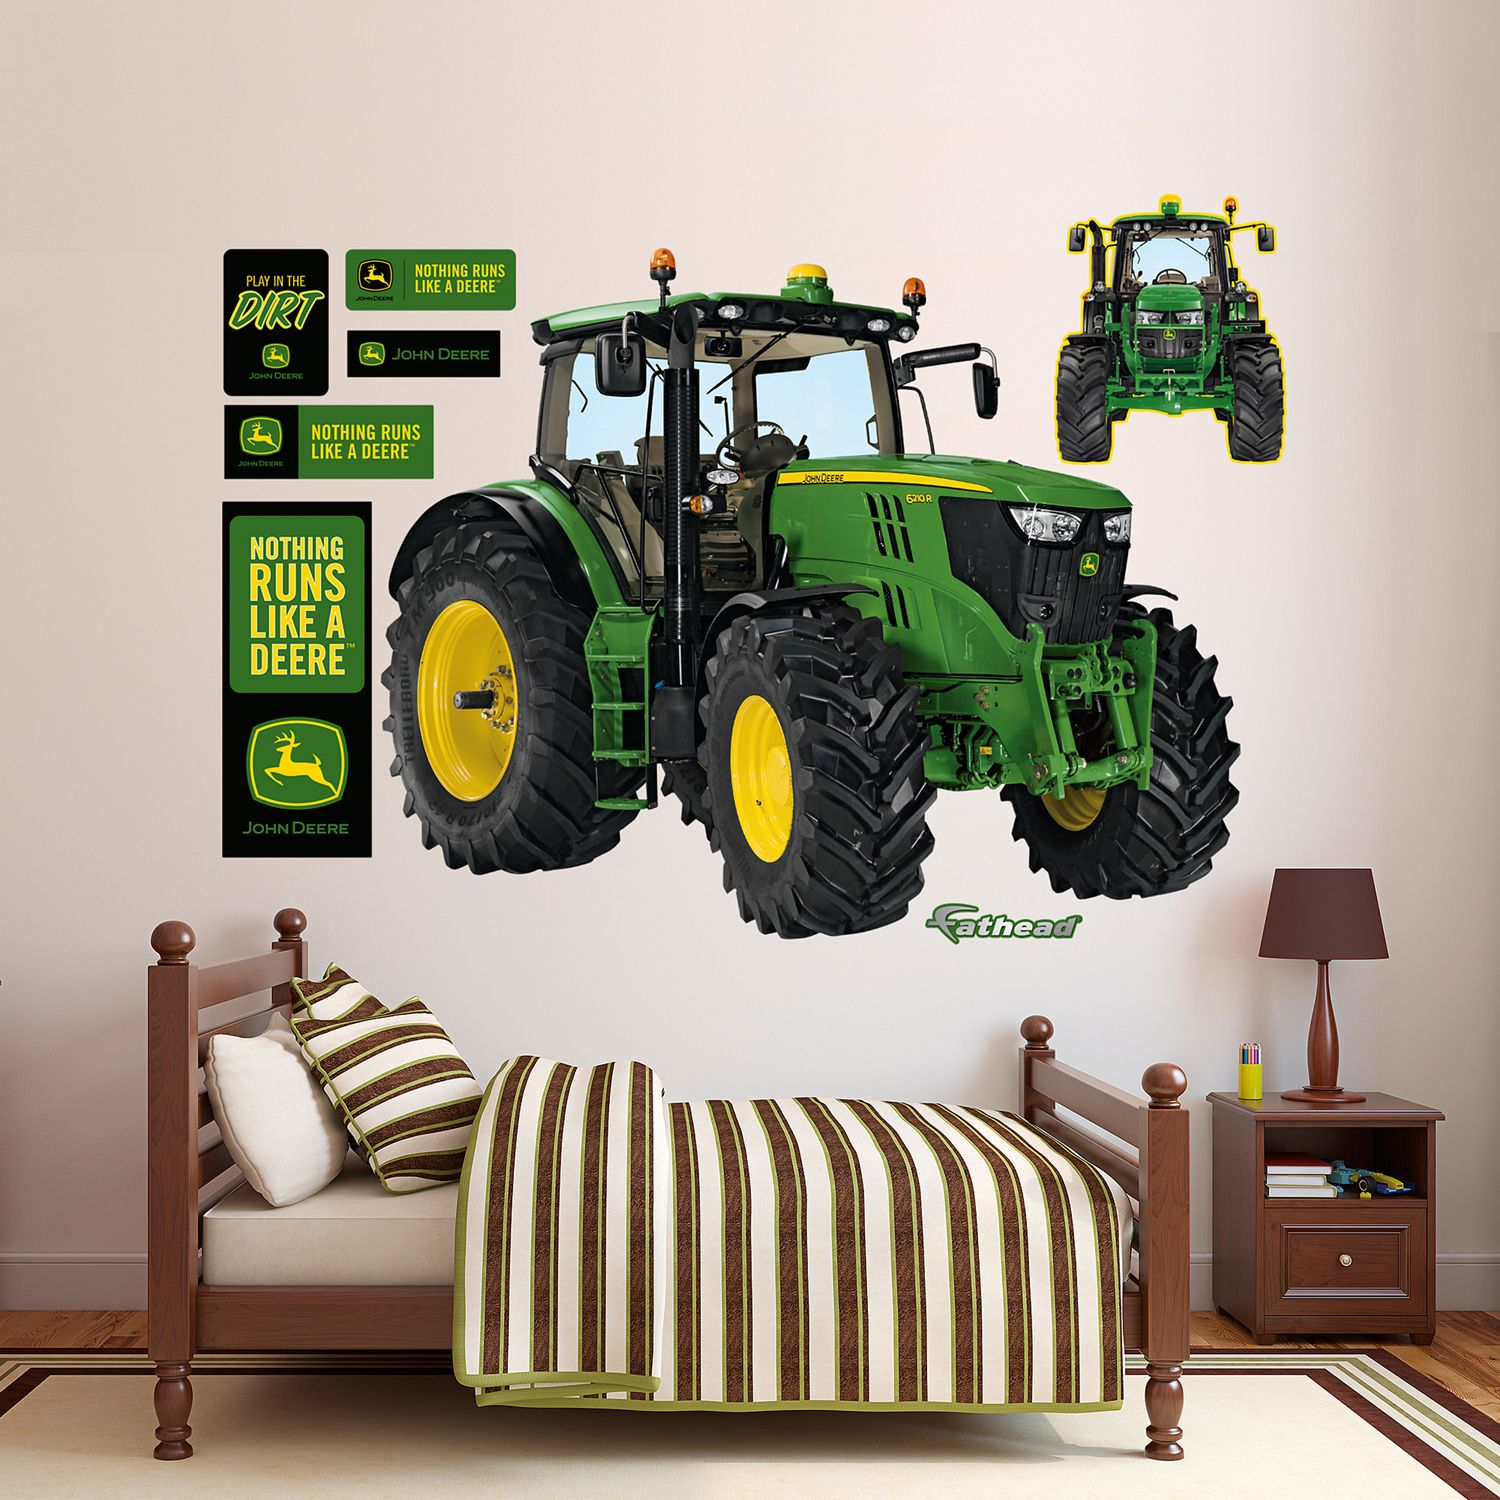 Superieur John Deere 6210R Tractor Wall Decals By Fathead